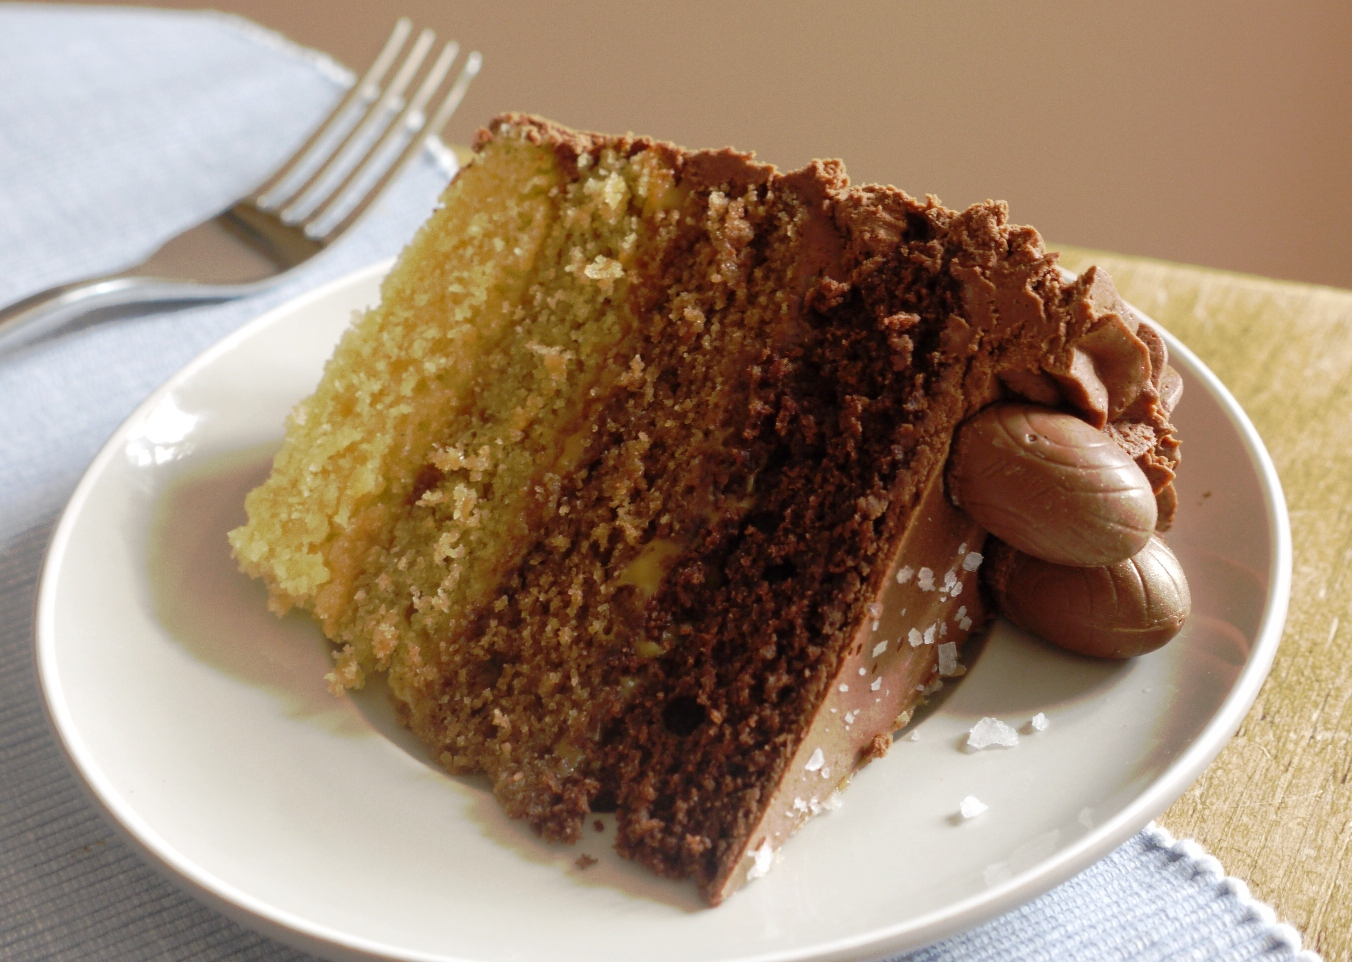 Chocolate & Caramel Layer Cake (adapted from the BBC Good Food website ...